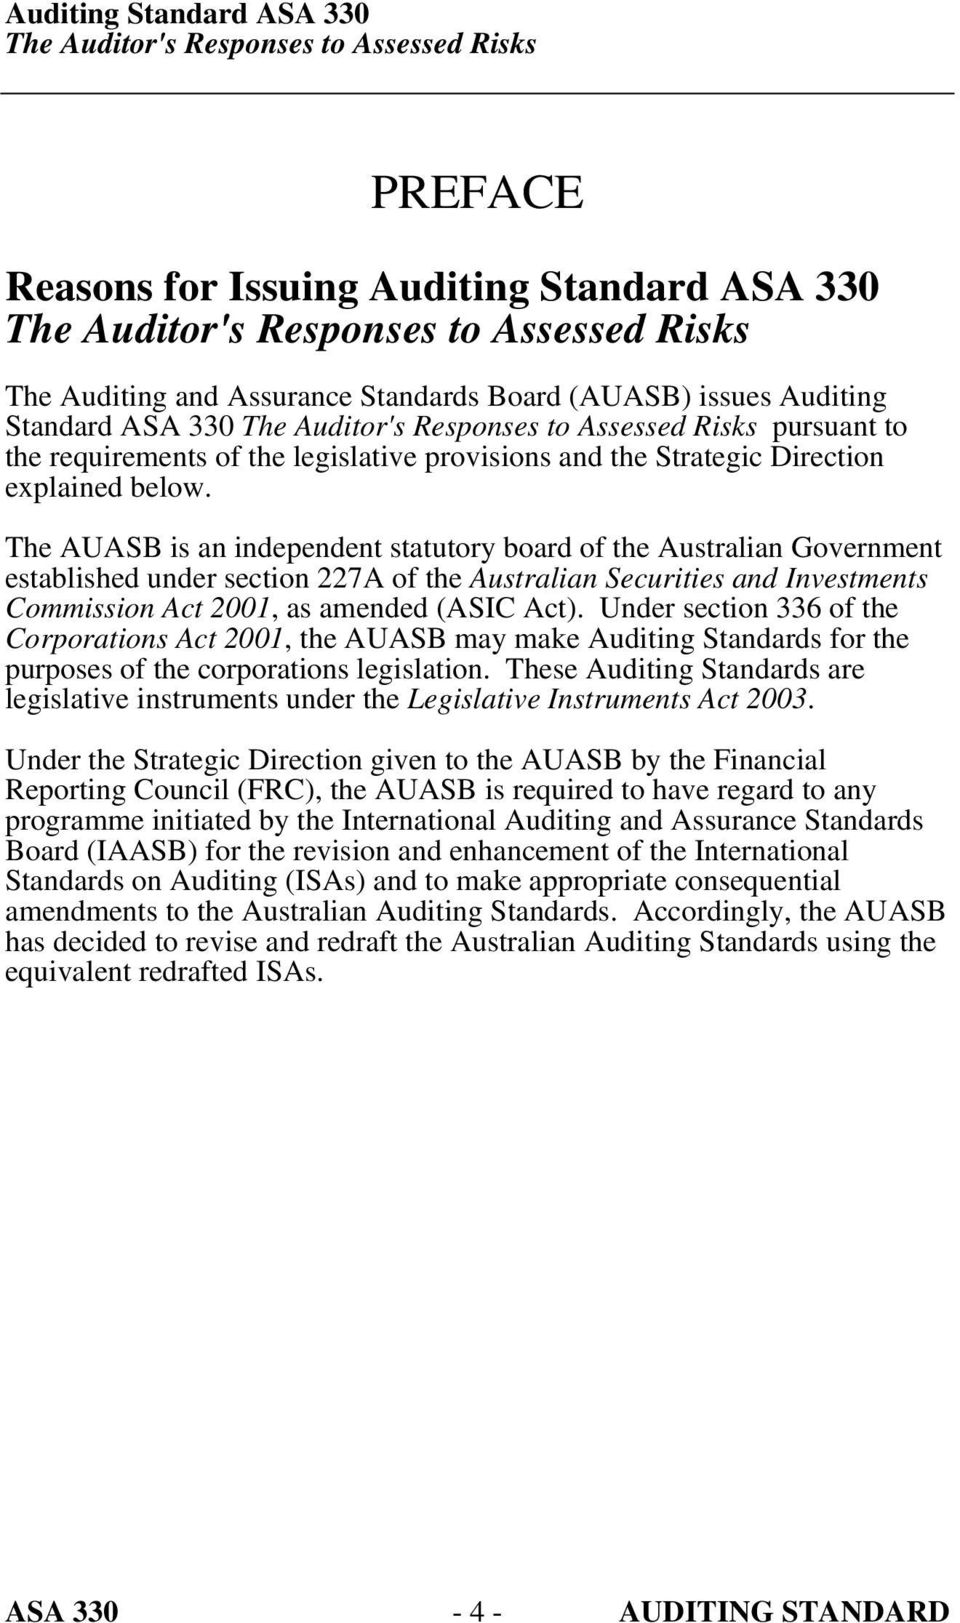 The AUASB is an independent statutory board of the Australian Government established under section 227A of the Australian Securities and Investments Commission Act 2001, as amended (ASIC Act).